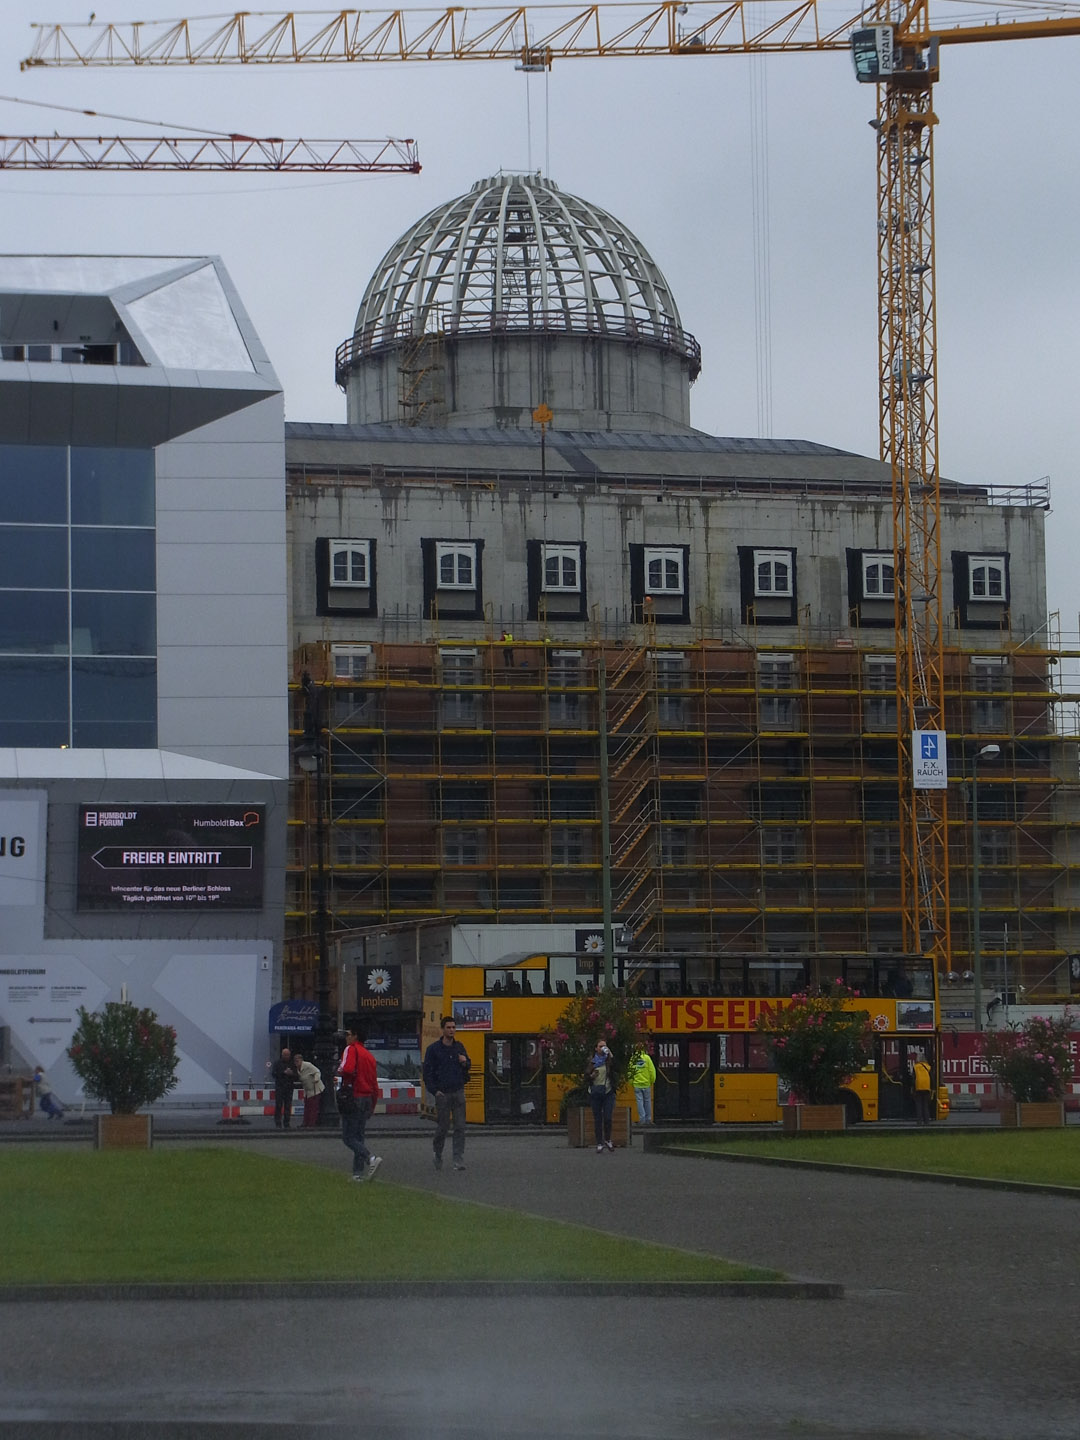 Rebuilding a replica of City Palace, Berlin